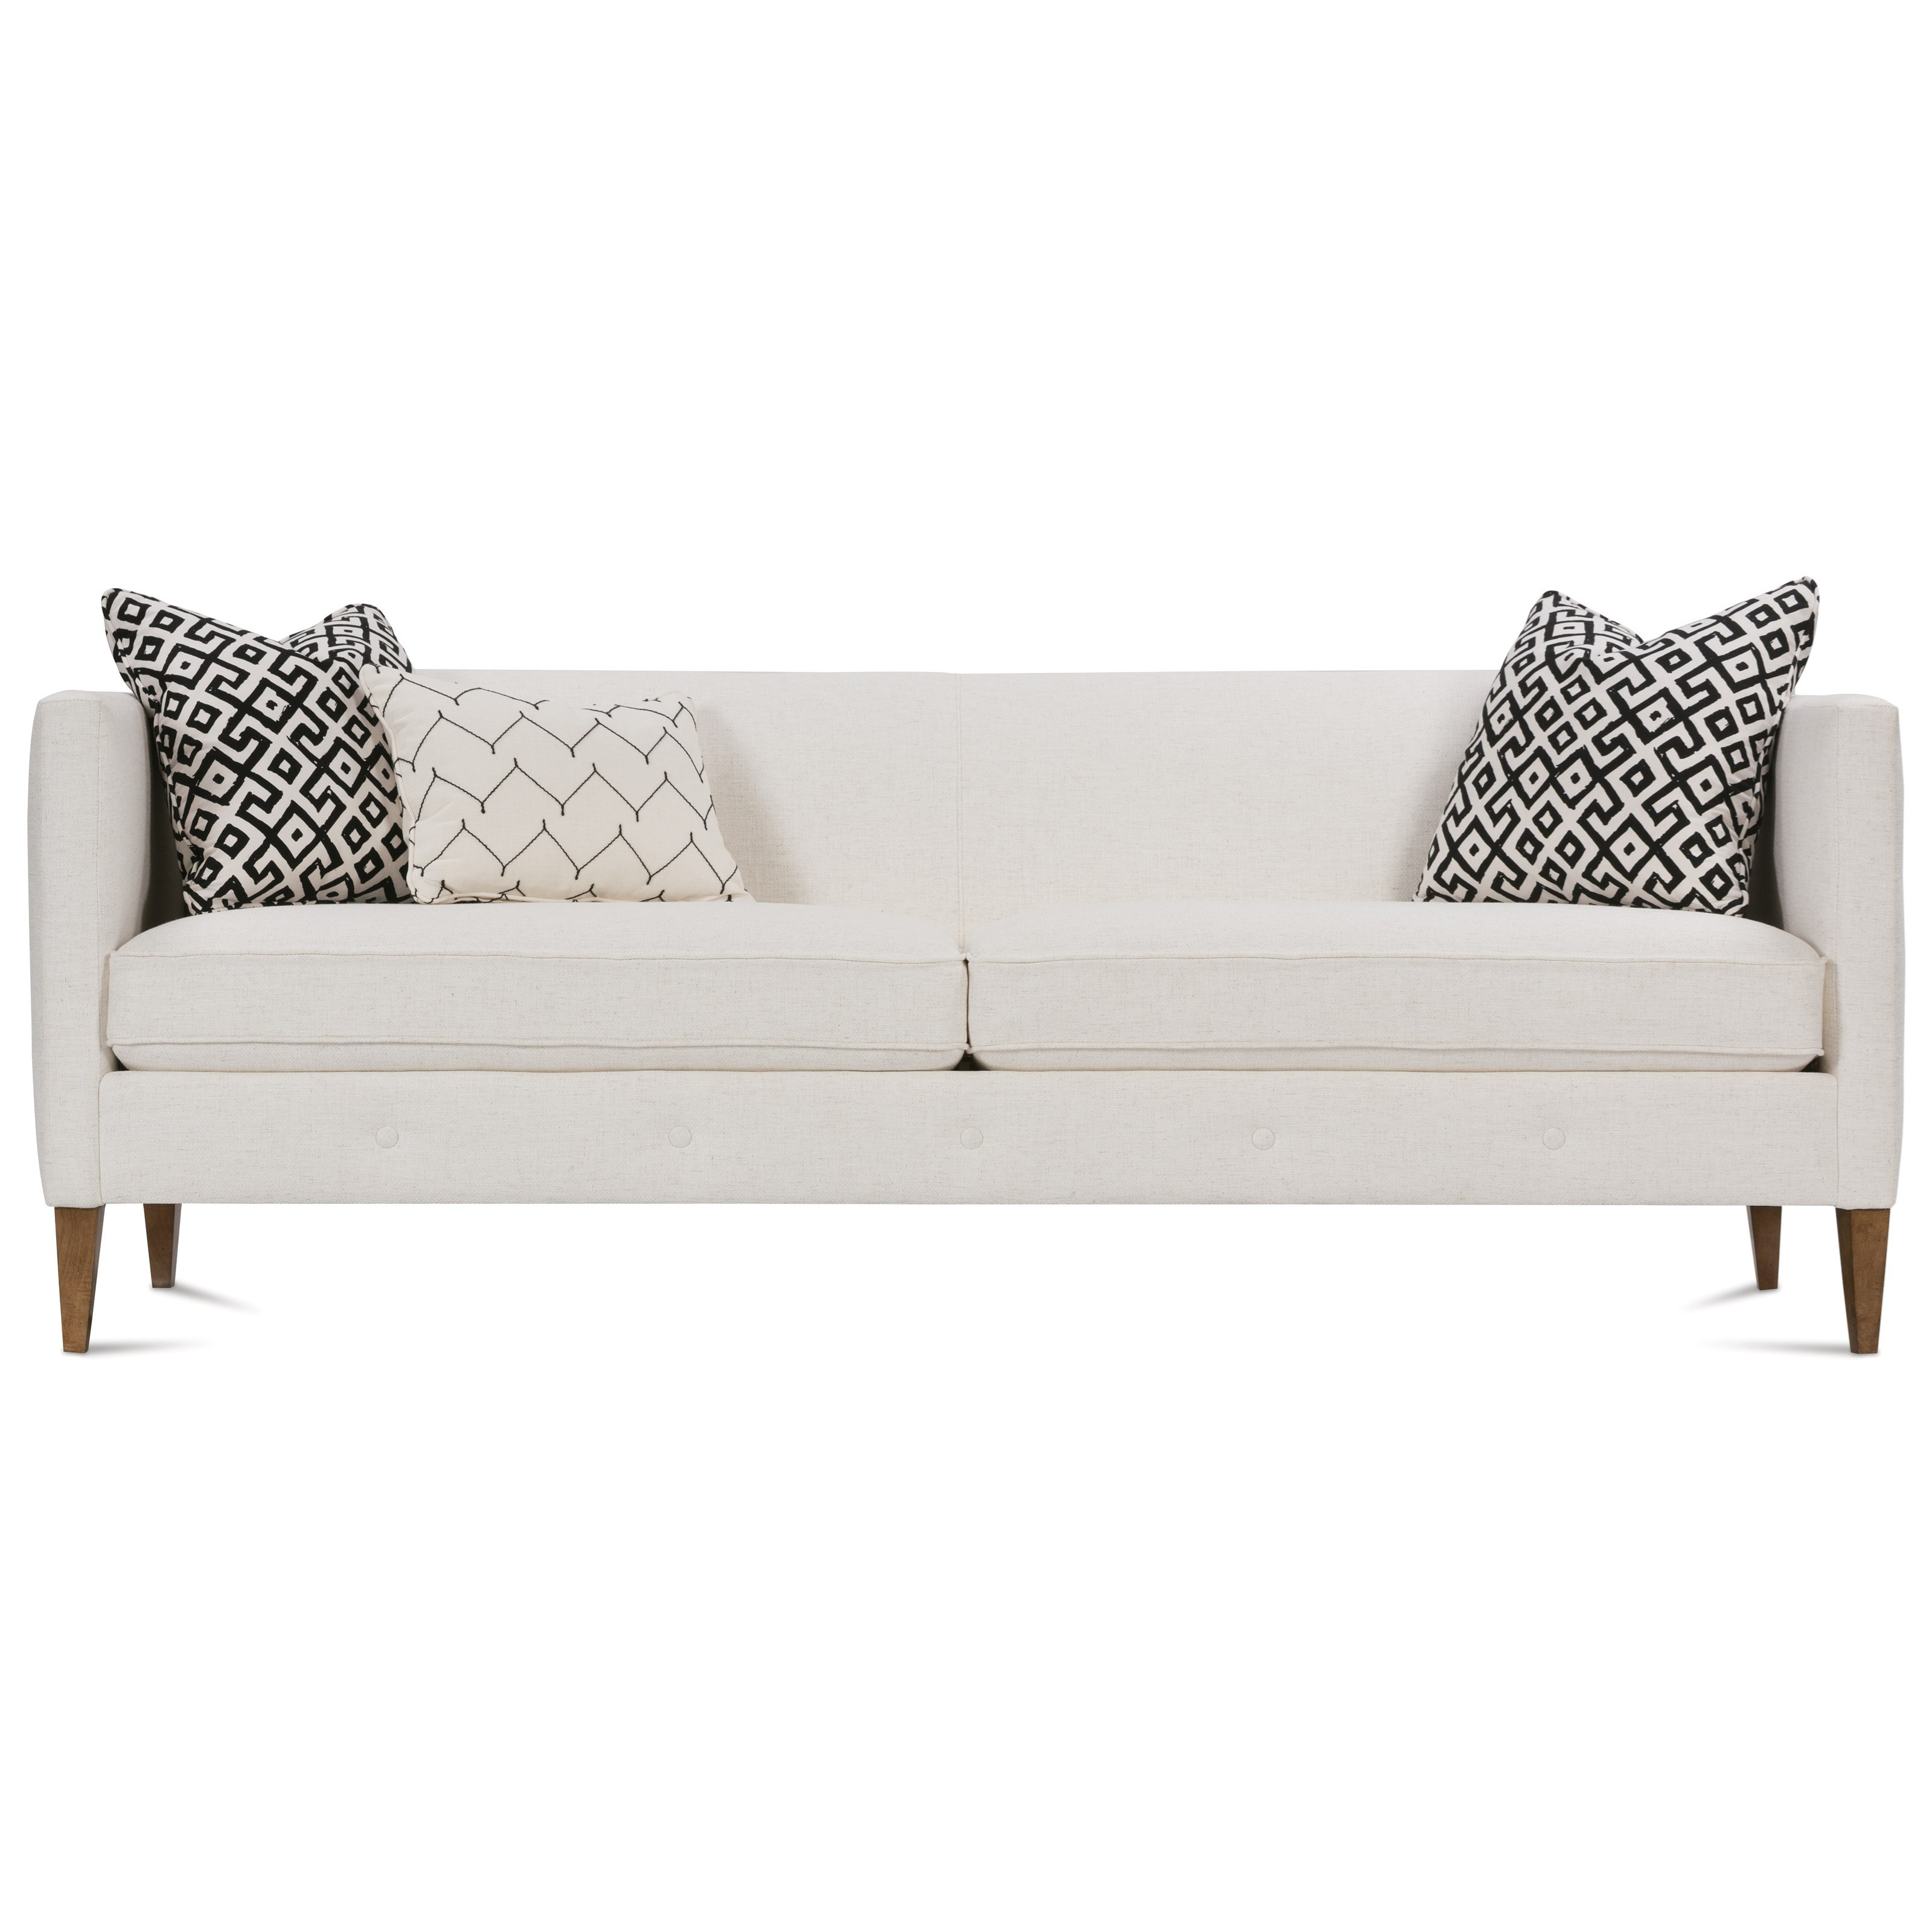 "Claire  86"" Contemporary Sofa by Rowe at Saugerties Furniture Mart"